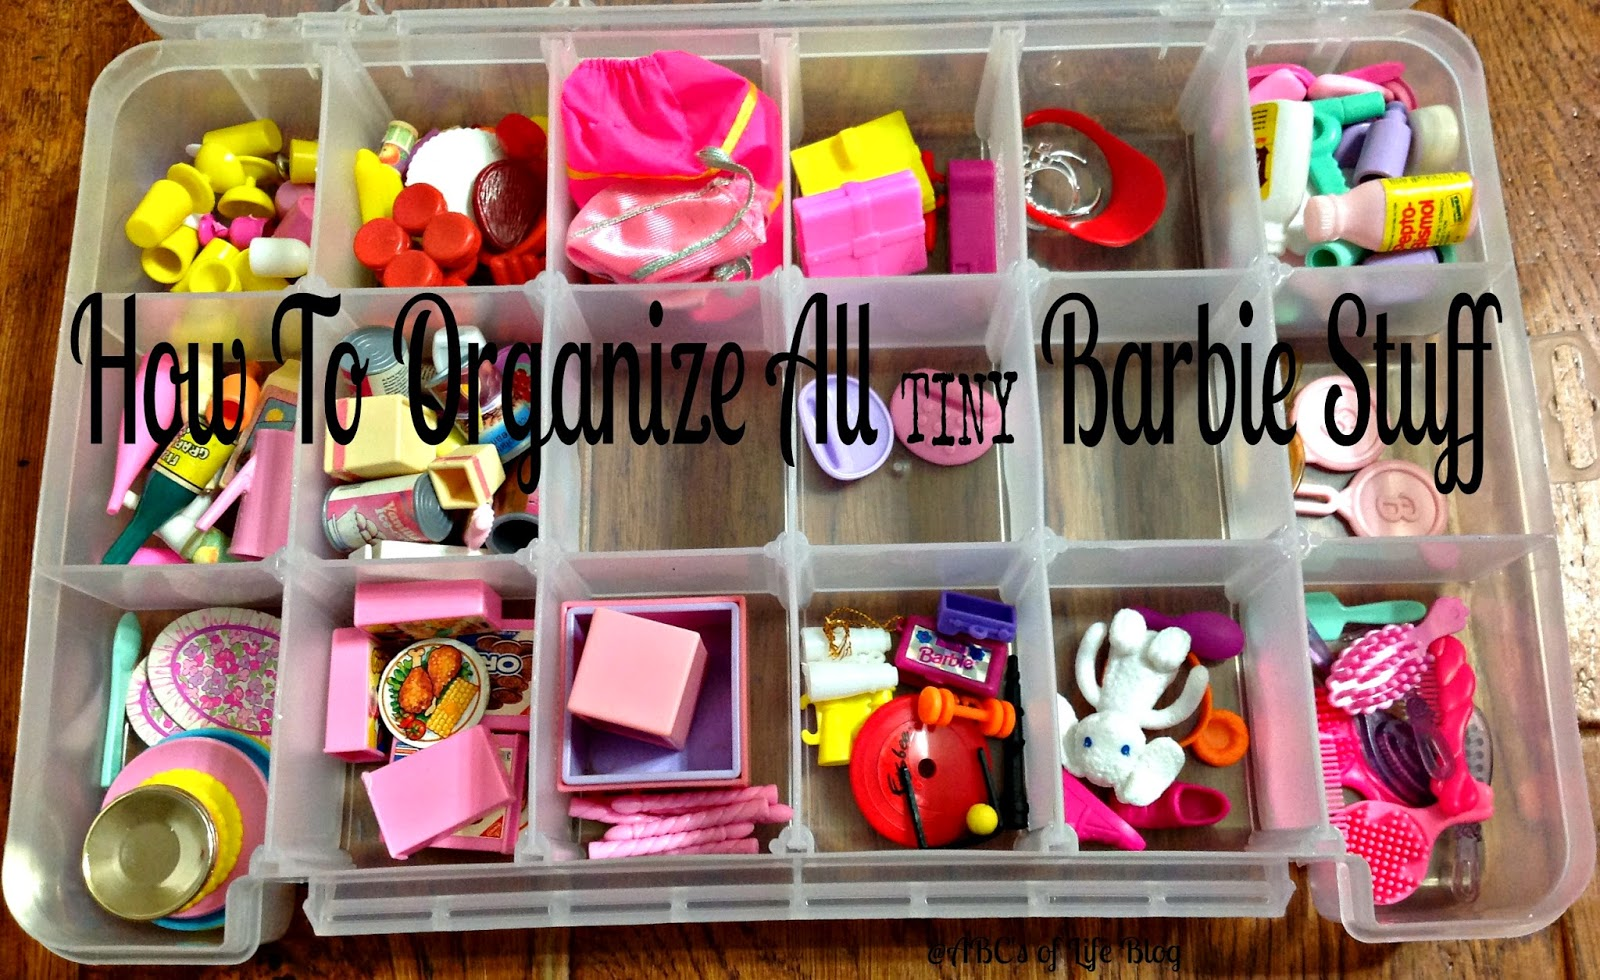 How to organize all the millions of tiny Barbie items and accessories